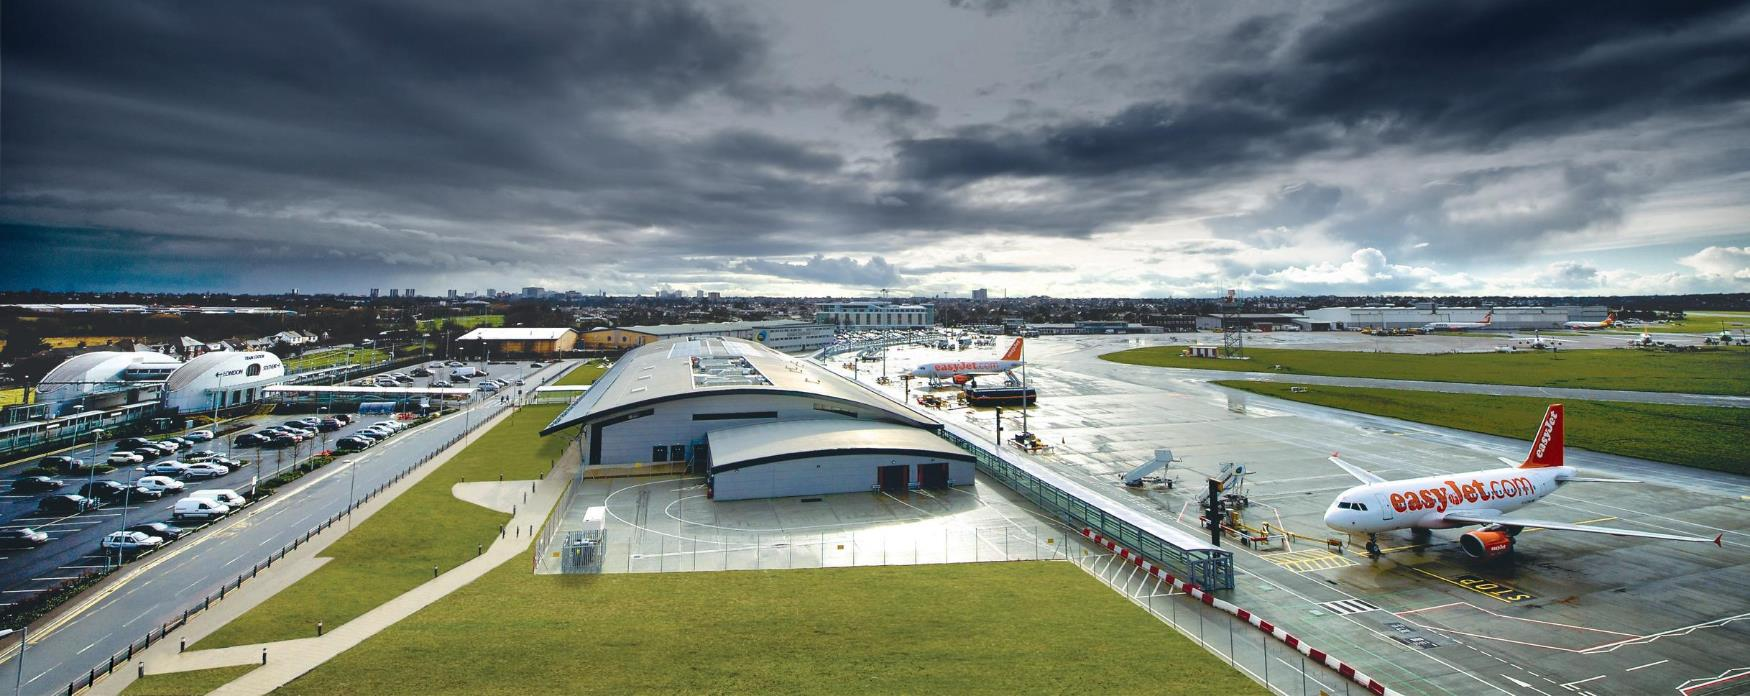 The terminal building at Southend Airport